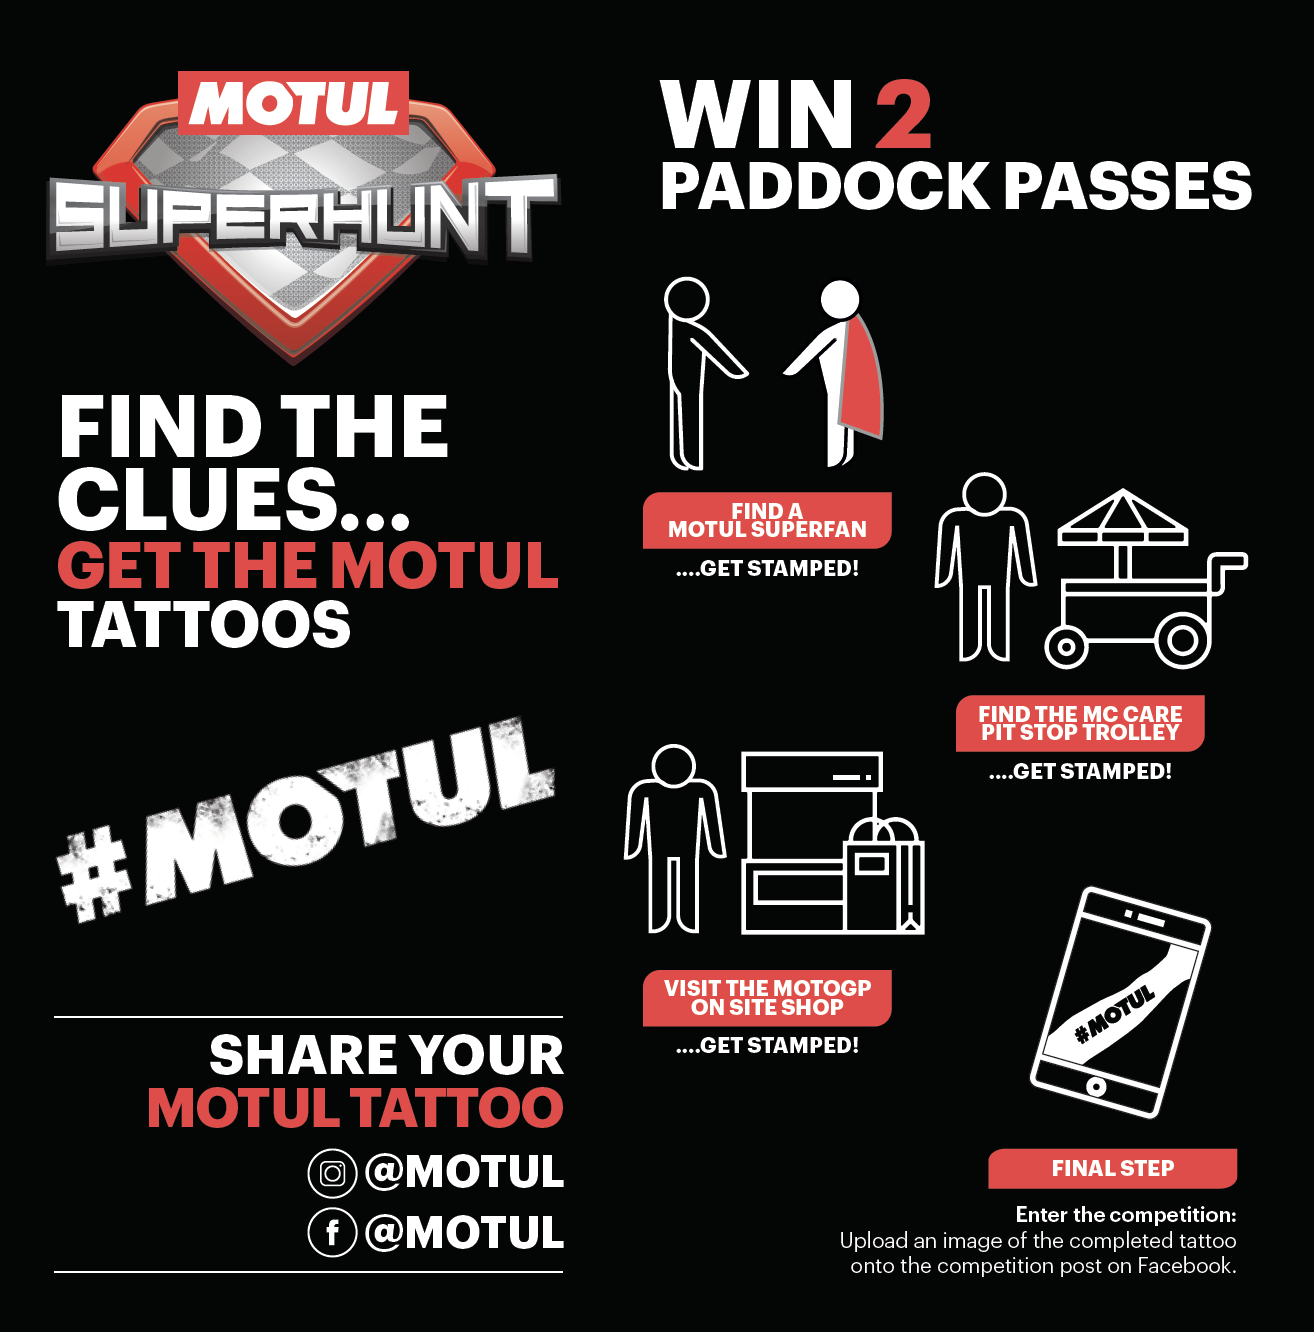 Motul SuperFan